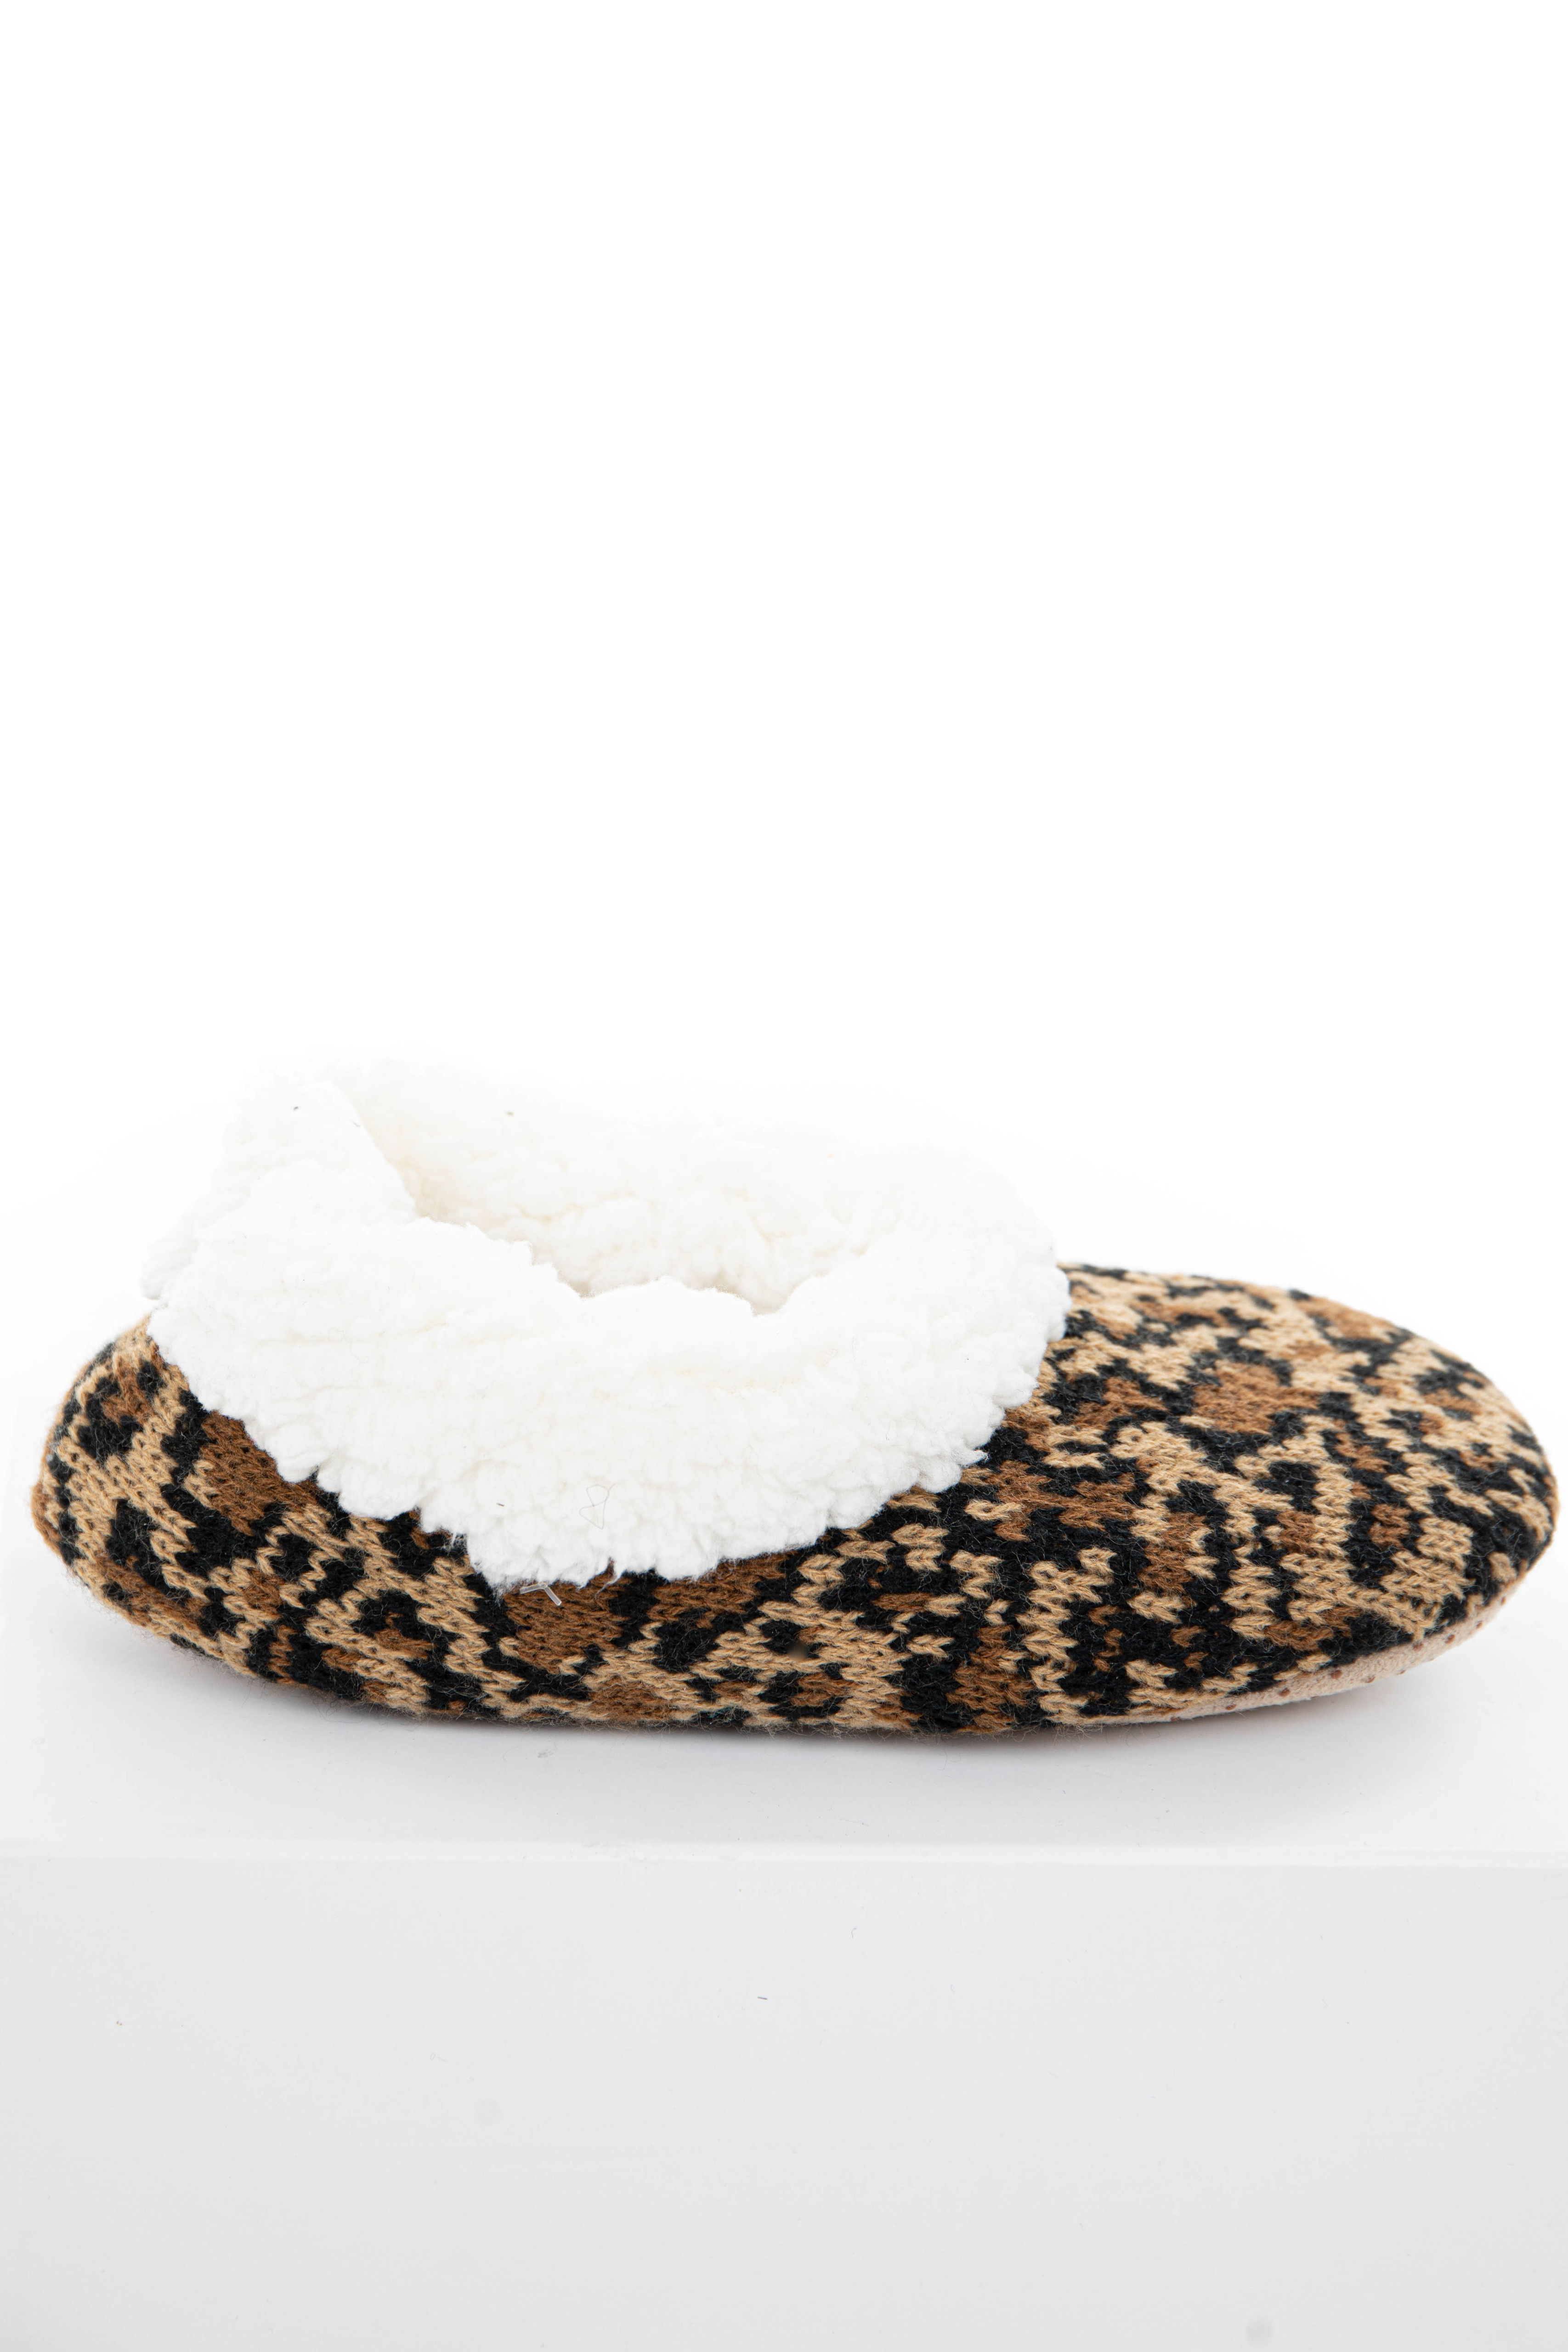 Beige Leopard Print Slippers with Faux Fur Lining